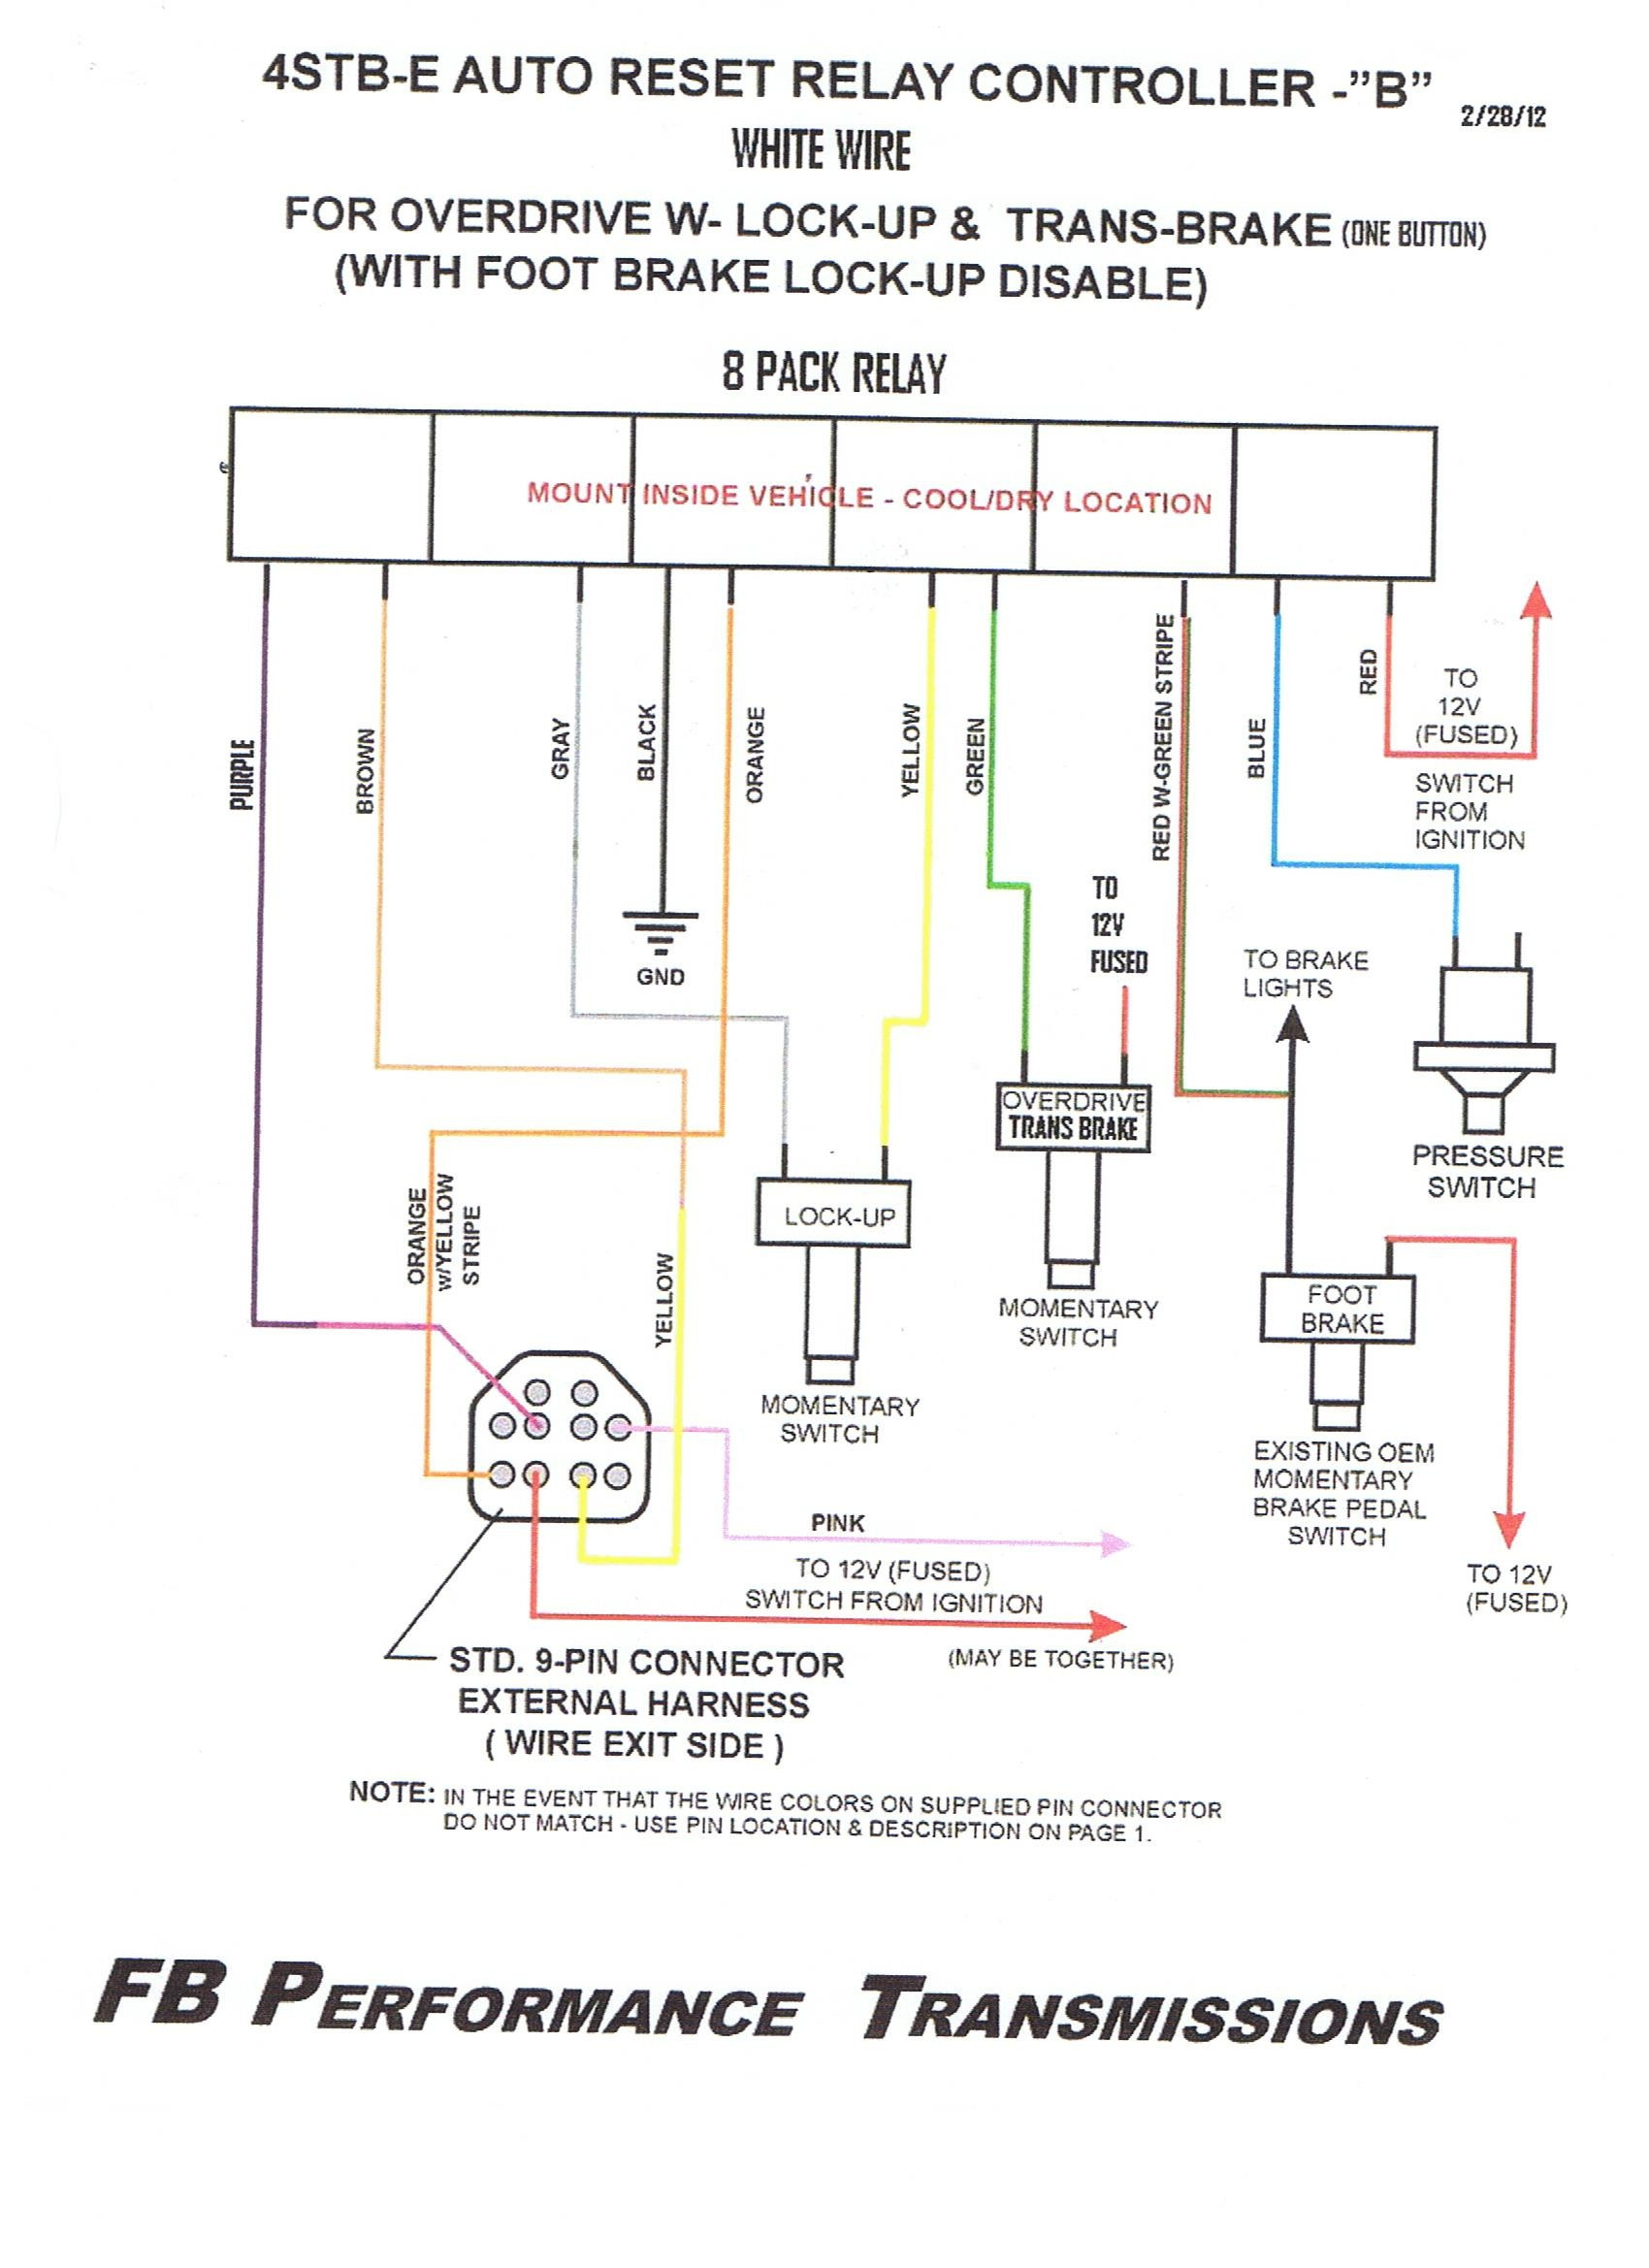 rope light wiring diagram Collection-Wiring Diagram for Rope Lights New Wiring Diagram for Bulkhead Lights 2017 4r70w Wiring Od button 10-p